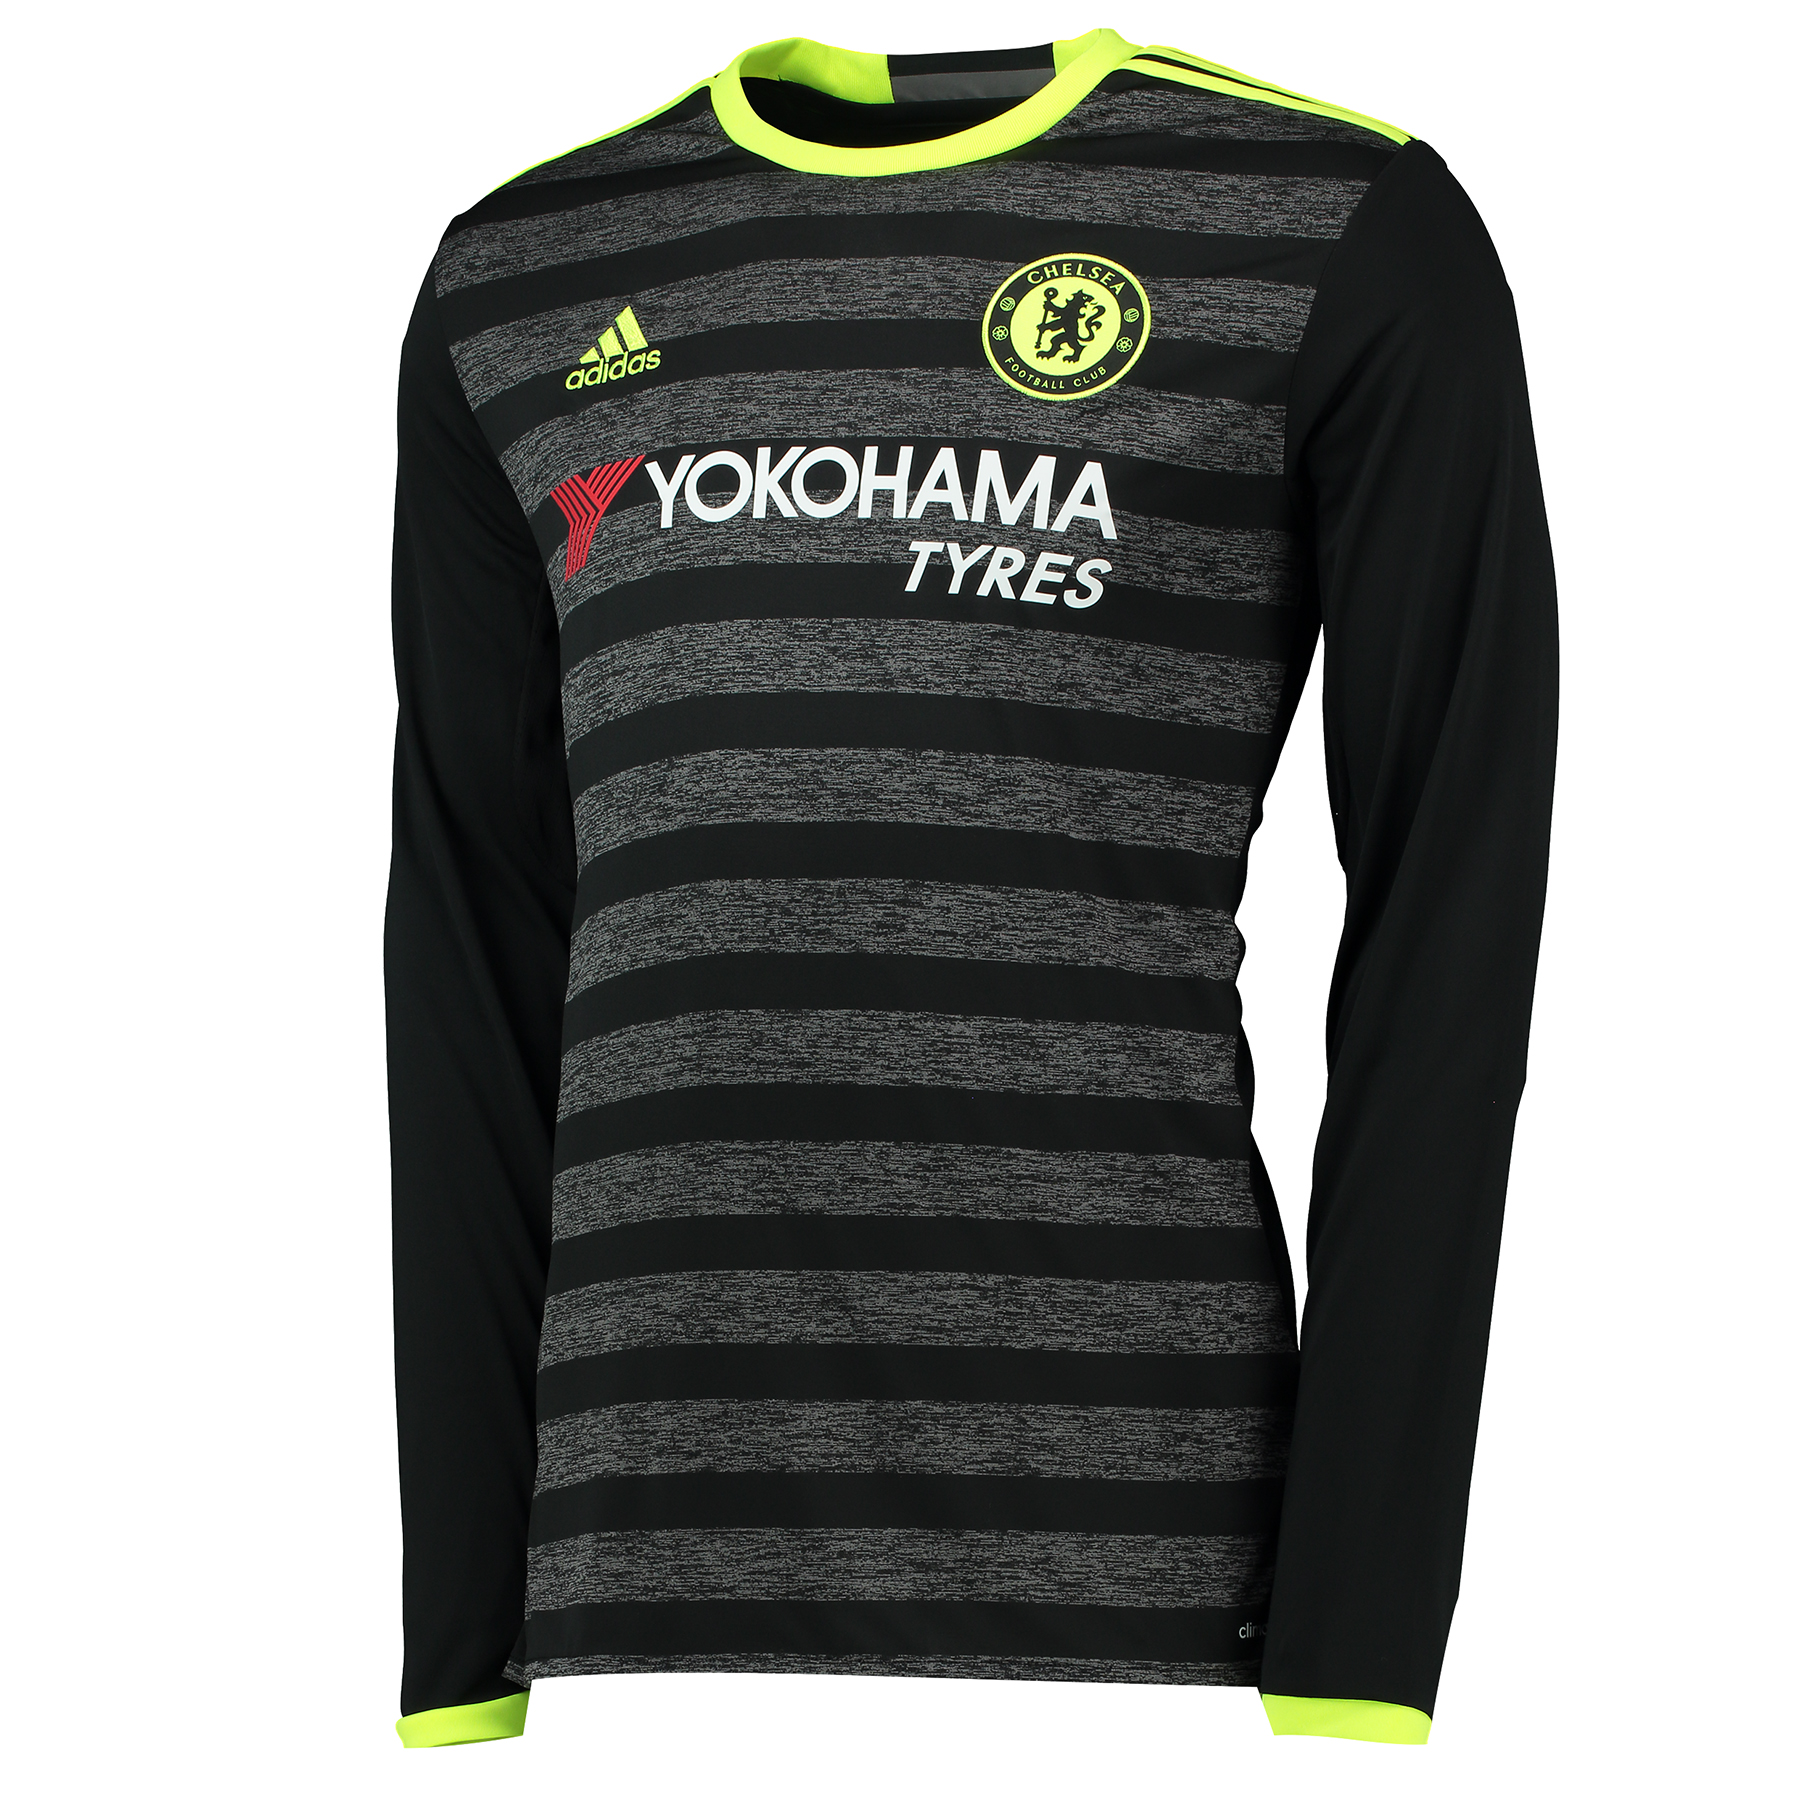 Chelsea Away Shirt 16-17 - Long Sleeve   Embrace an exciting fresh chapter in Chelsea Football Club's colourful history with the Chelsea Away Shirt 16-17 - Long Sleeve.   This official, long sleeve Chelsea change shirt is marked by slim black and moderately thicker grey frontal hoops; the latter of which presenting a cotton-style image that appears to visually possess a television static effect.   Providing this cutting-edge jersey with high-impact contrast, the collar, sleeve trim and shoulder 3 Stripes are all enhanced by solar yellow accents, with the same colour continued through the brand motif, club crest and CHELSEA FC back neck wording.   Features: • Crewneck collar • climacool® technology • Mesh ventilation inserts • Mélange fabric • Woven badge on left chest • Chelsea FC sign off on collar • Part of sustainable product program • 100% recycled polyester interlock